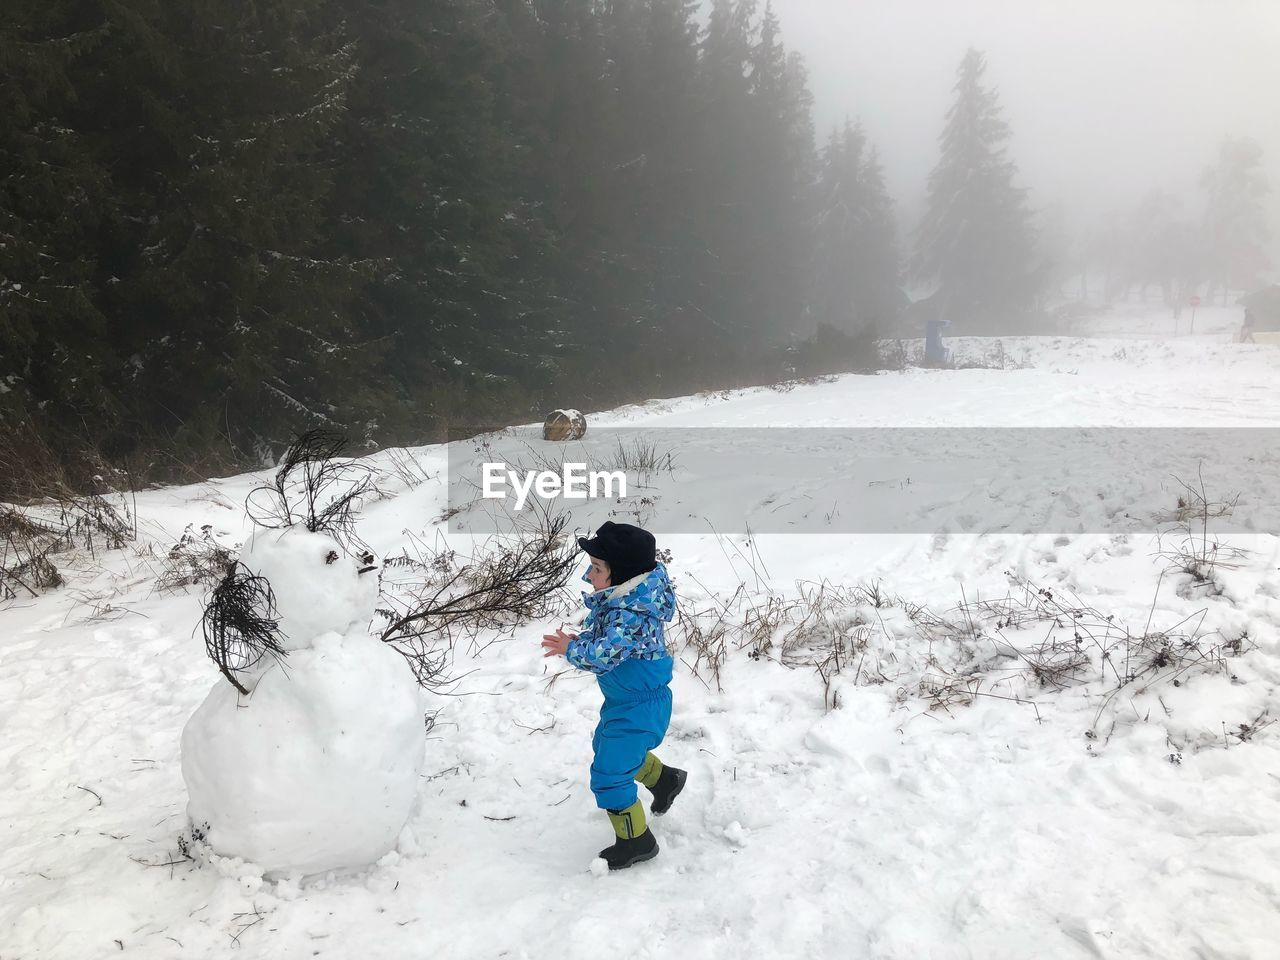 cold temperature, snow, winter, full length, real people, warm clothing, white color, nature, leisure activity, child, one person, day, childhood, beauty in nature, tree, clothing, lifestyles, land, covering, outdoors, extreme weather, innocence